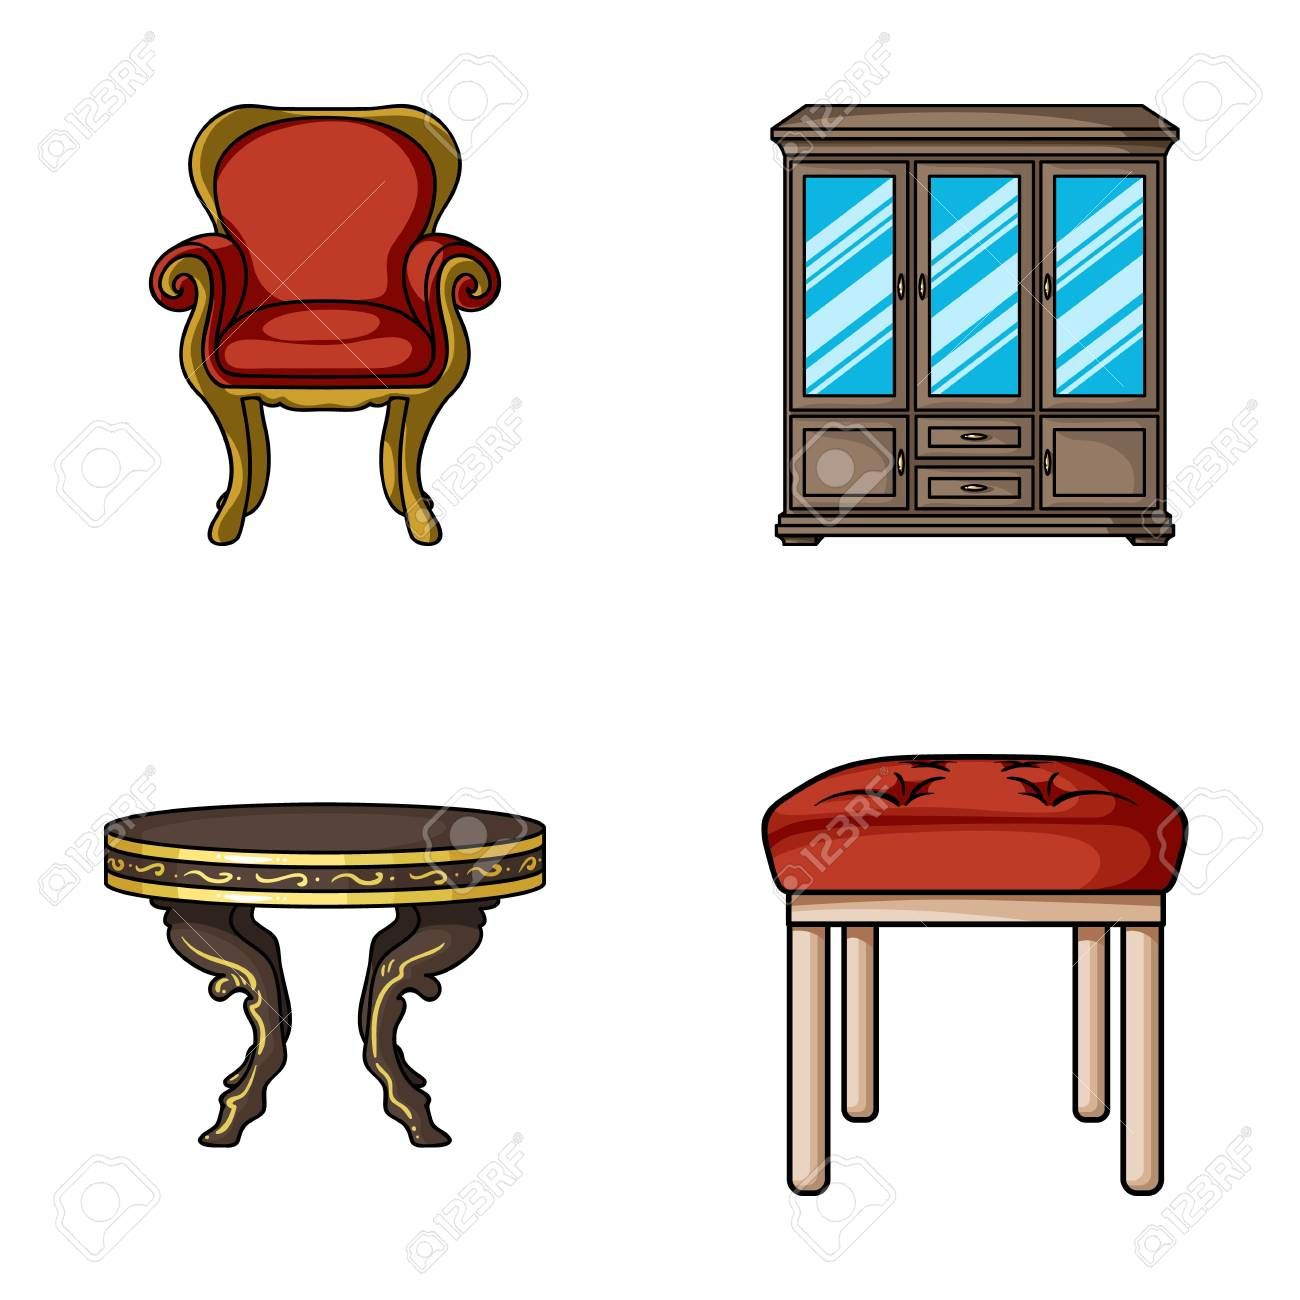 Furniture Interior Design Chair Furniture And Home Interior Set Collection Icons In Cartoon Style Vector Symbol Cartoon Styles House Interior Design Trends